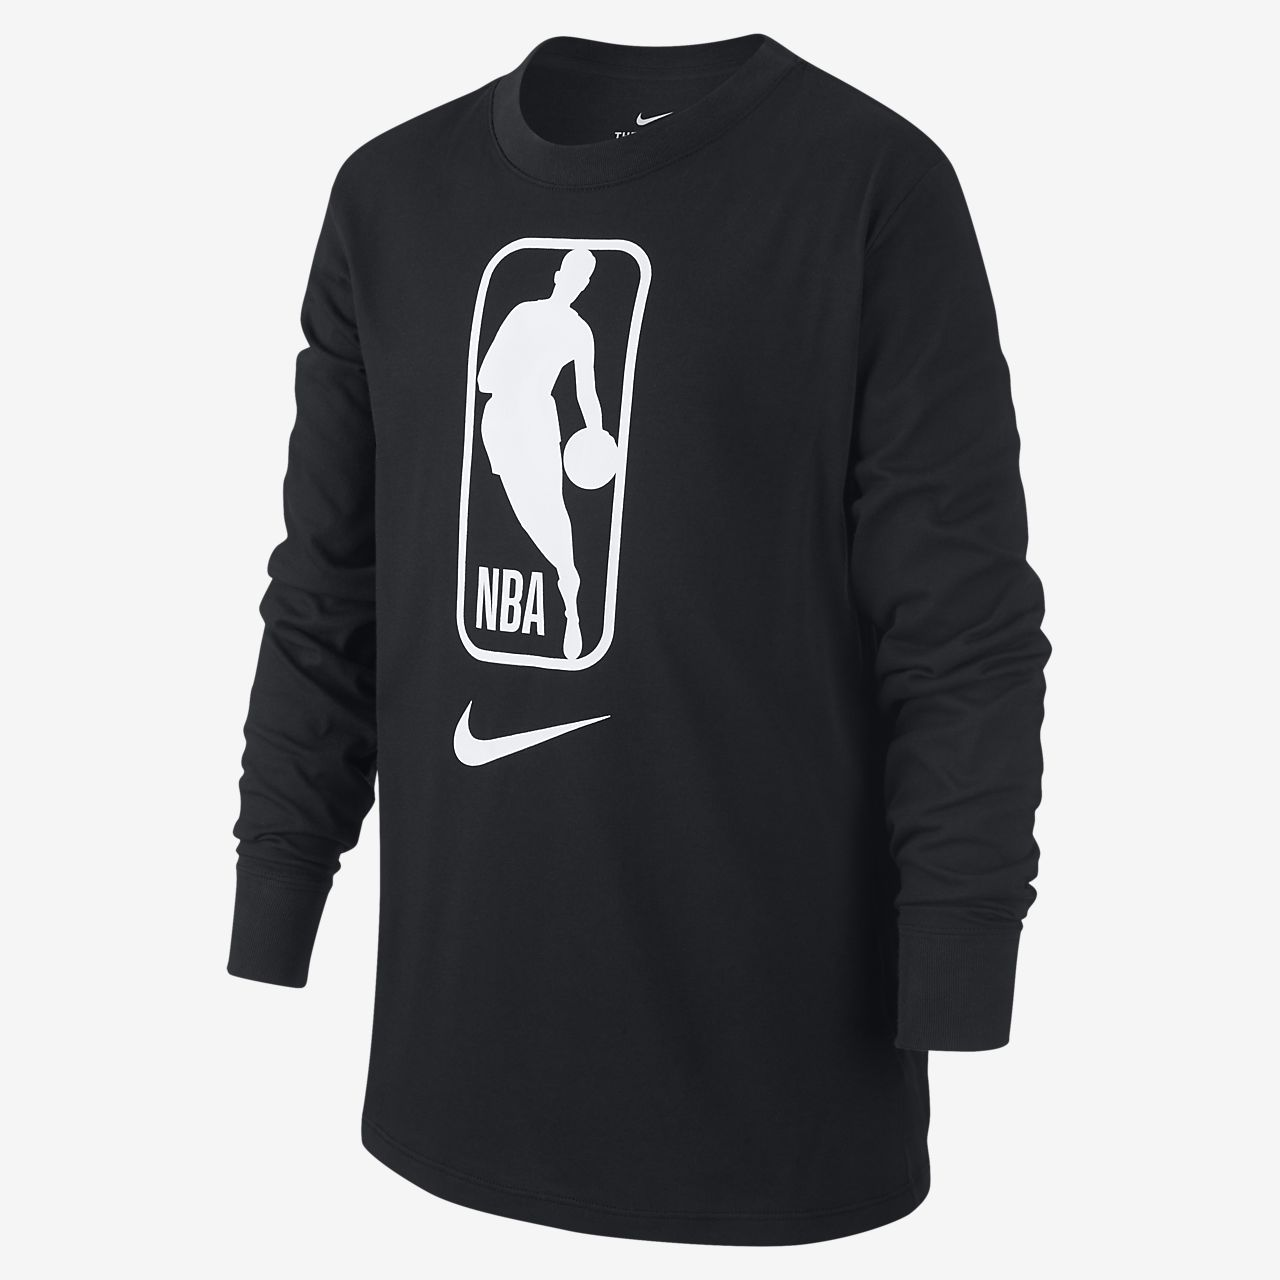 Nike Dri-FIT Kids' Long-Sleeve NBA T-Shirt